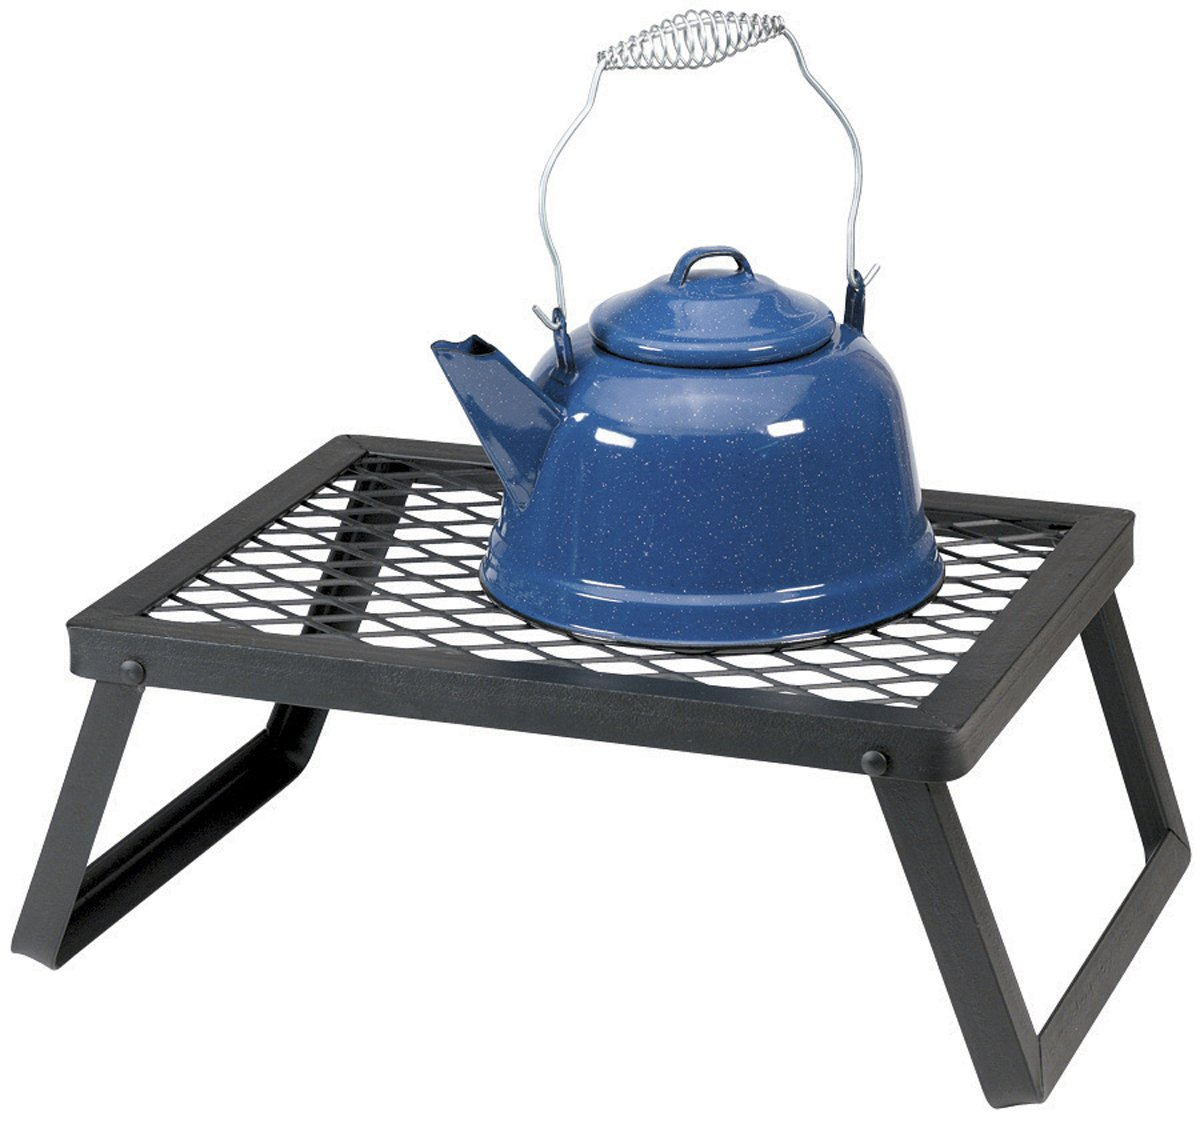 Stansport Heavy Duty Camp Grill (12x16-Inch)